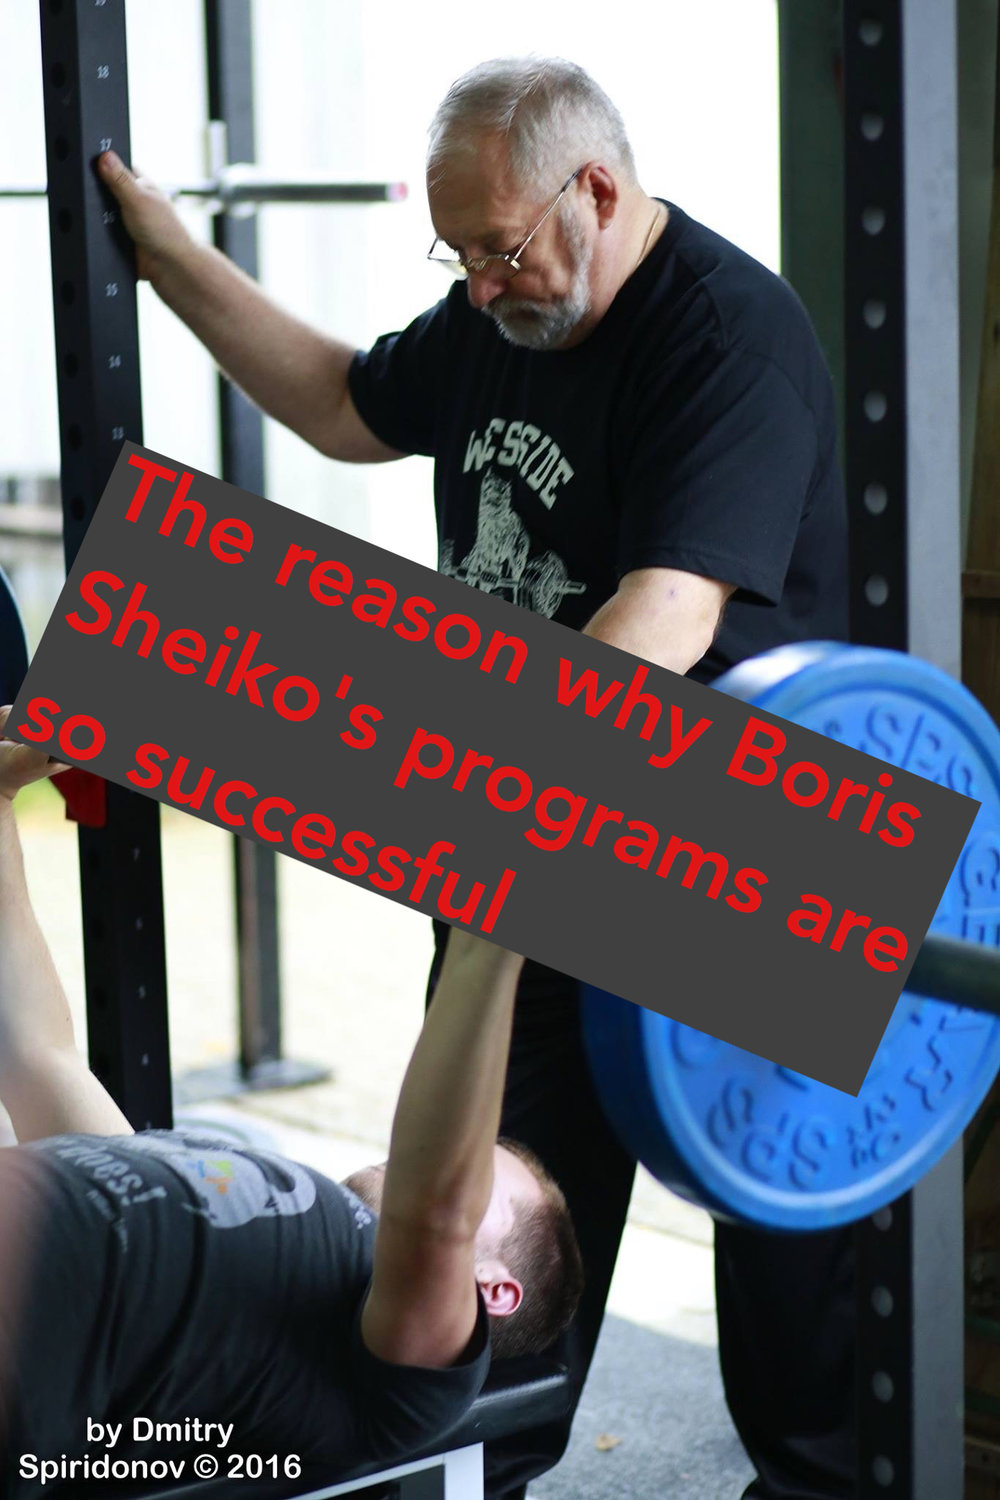 The reason why Boris Sheiko's programs are so successful